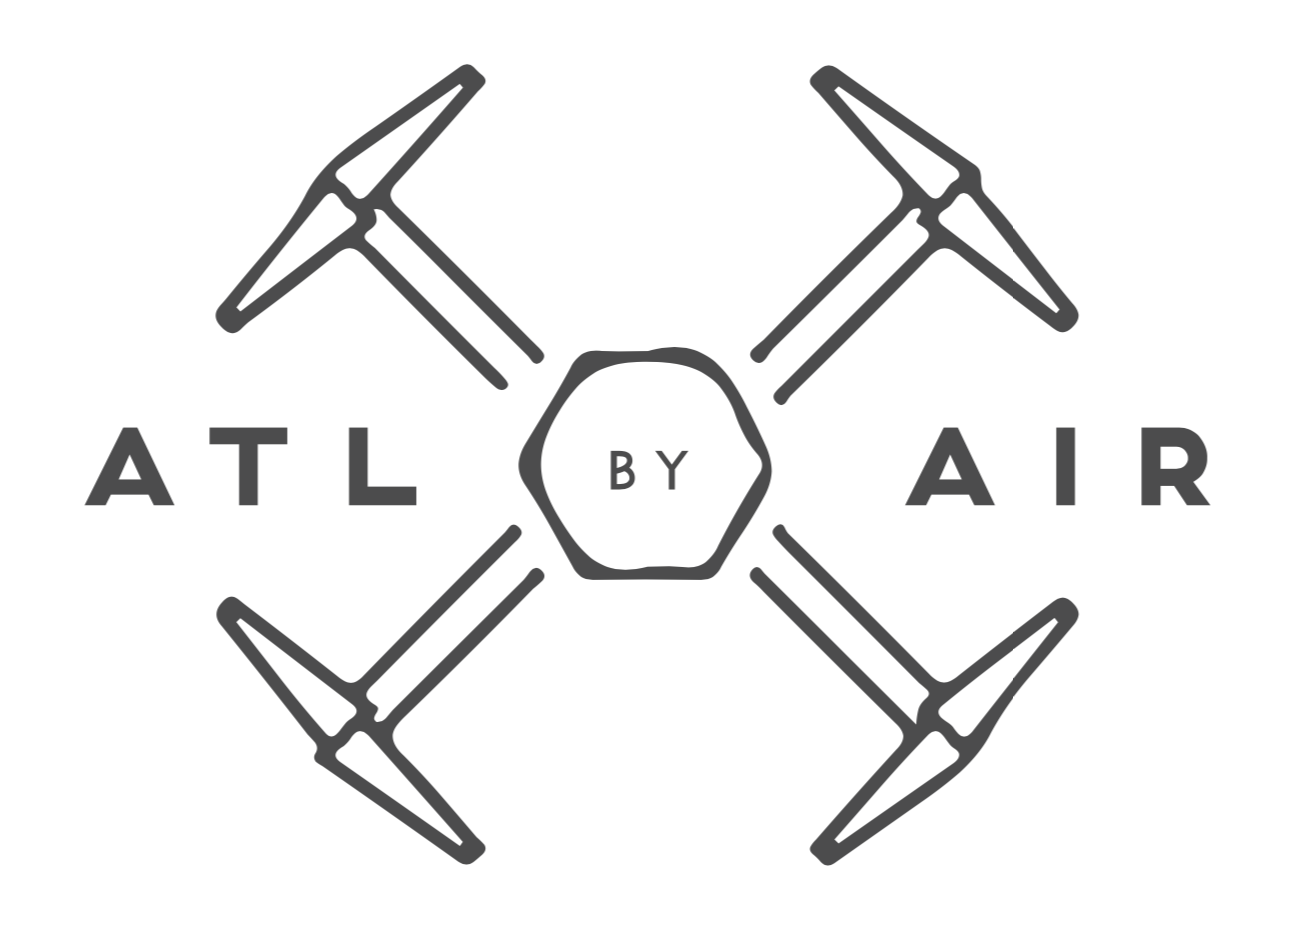 ATL By Air logo